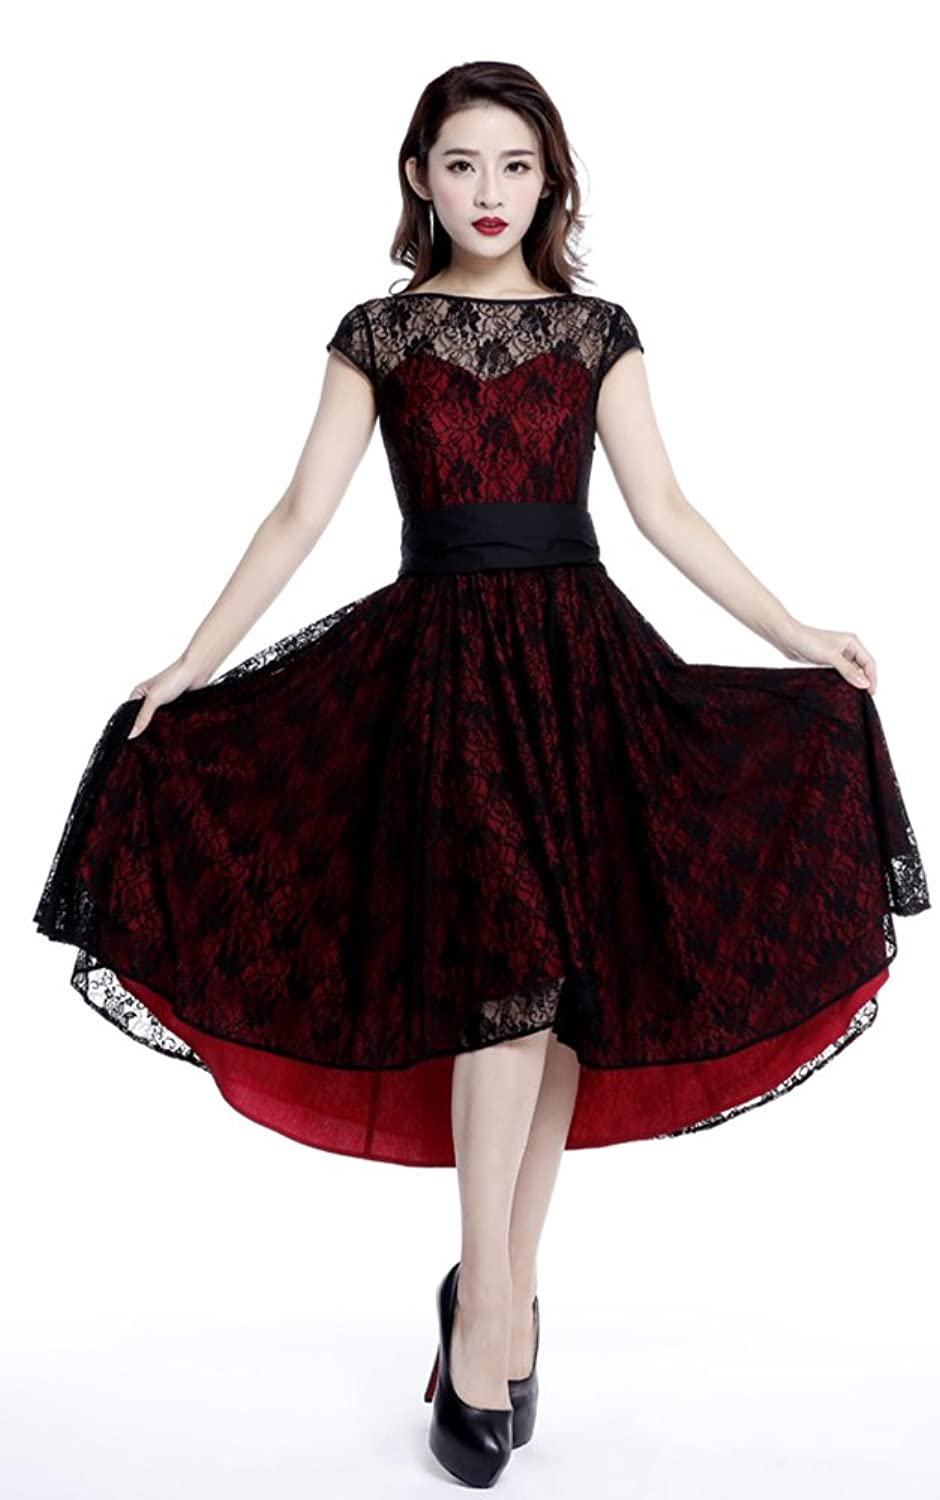 Chic Star Red Lace Swing Dress